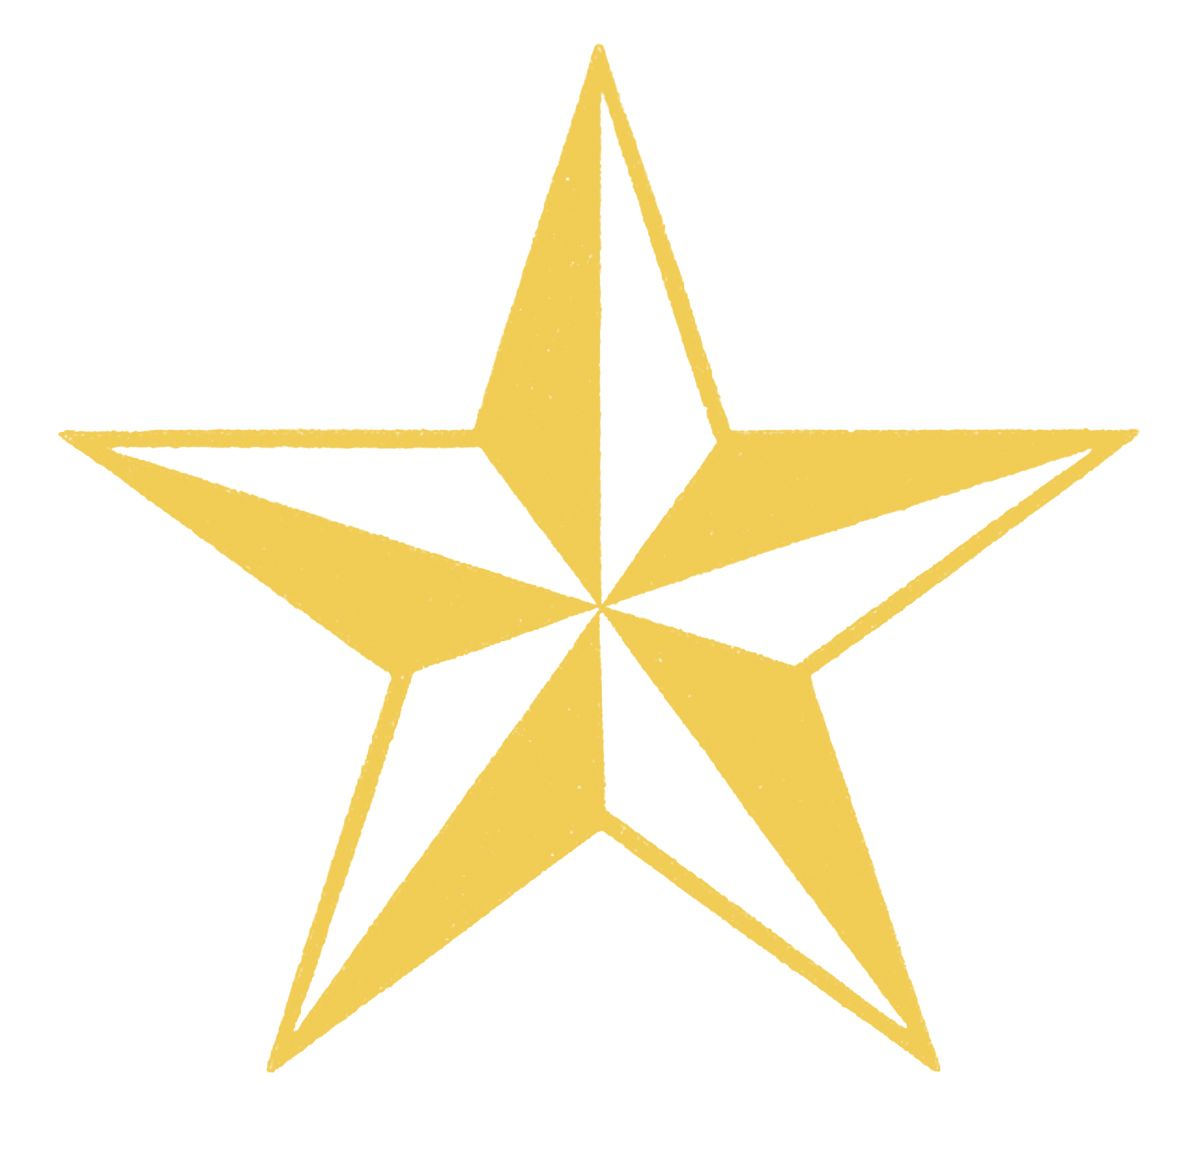 medium resolution of free star clipart images for teachers students web designers crafters etc to use in projects printables reports